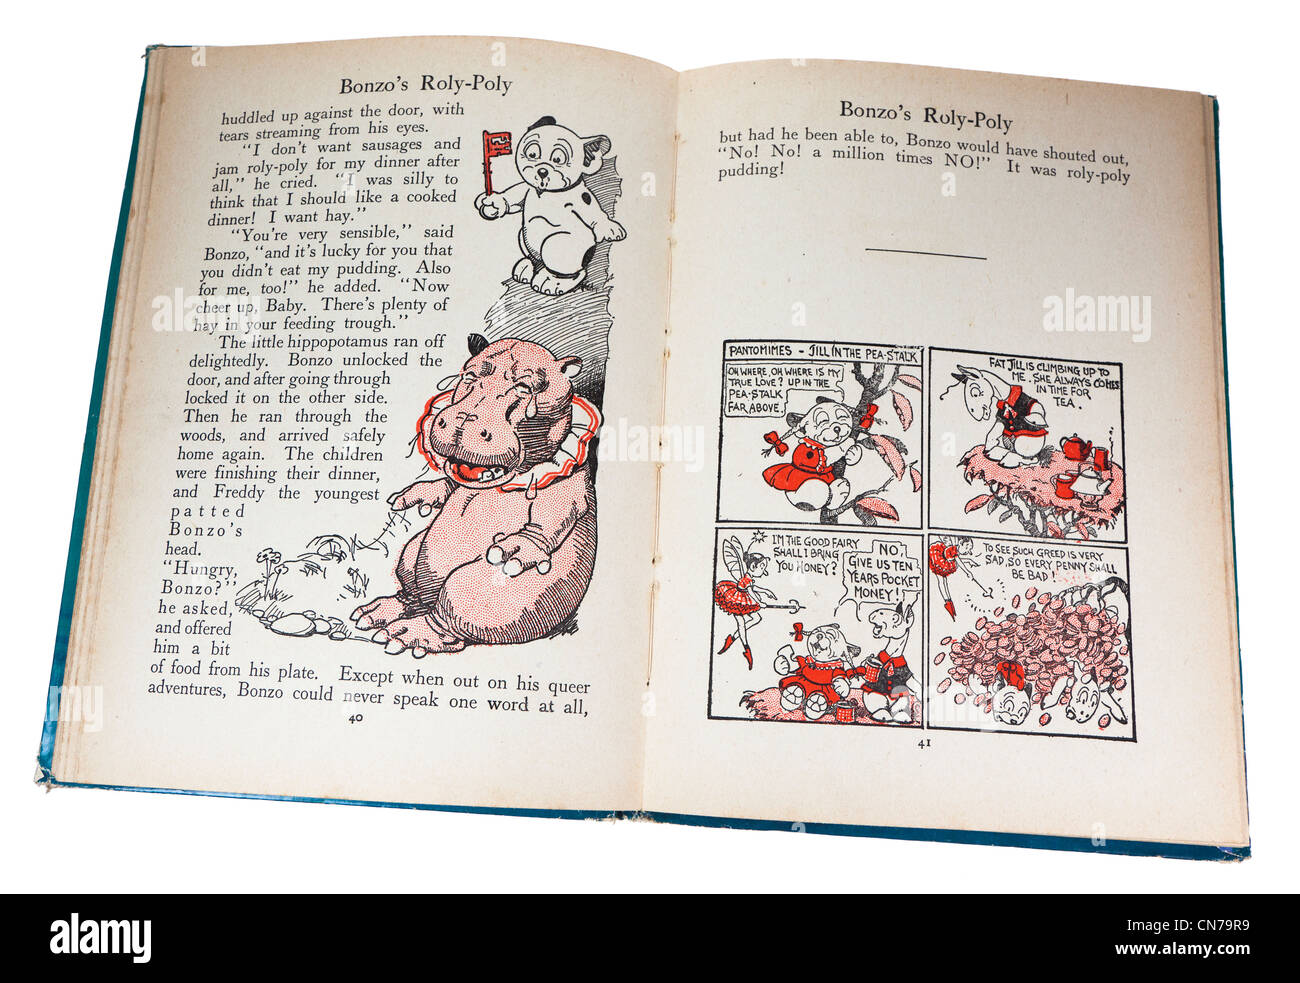 Illustrated story from children's Bonzo's Book of Stories published in 1930, UK - Stock Image